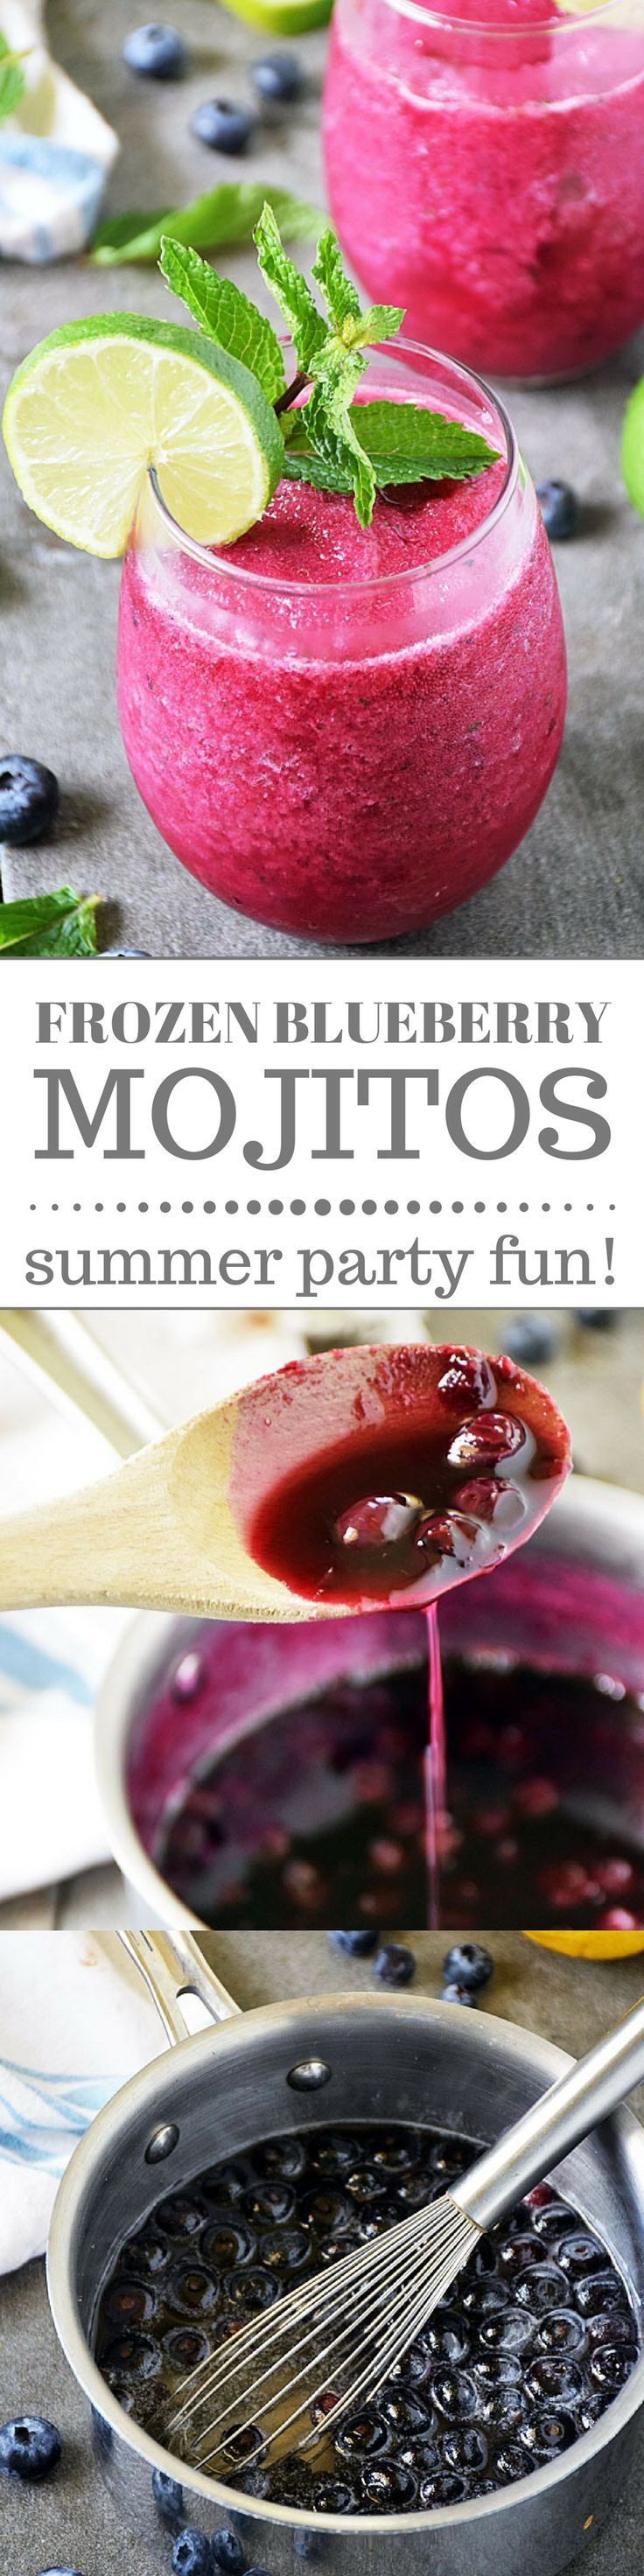 Frozen Blueberry Mojito is made with fresh ingredients to maximize flavor. This refreshing mocktail can be enjoyed by all ages or you can add rum for an adult only party. Either way it is fruity and delicious and perfect for all your summer parties!